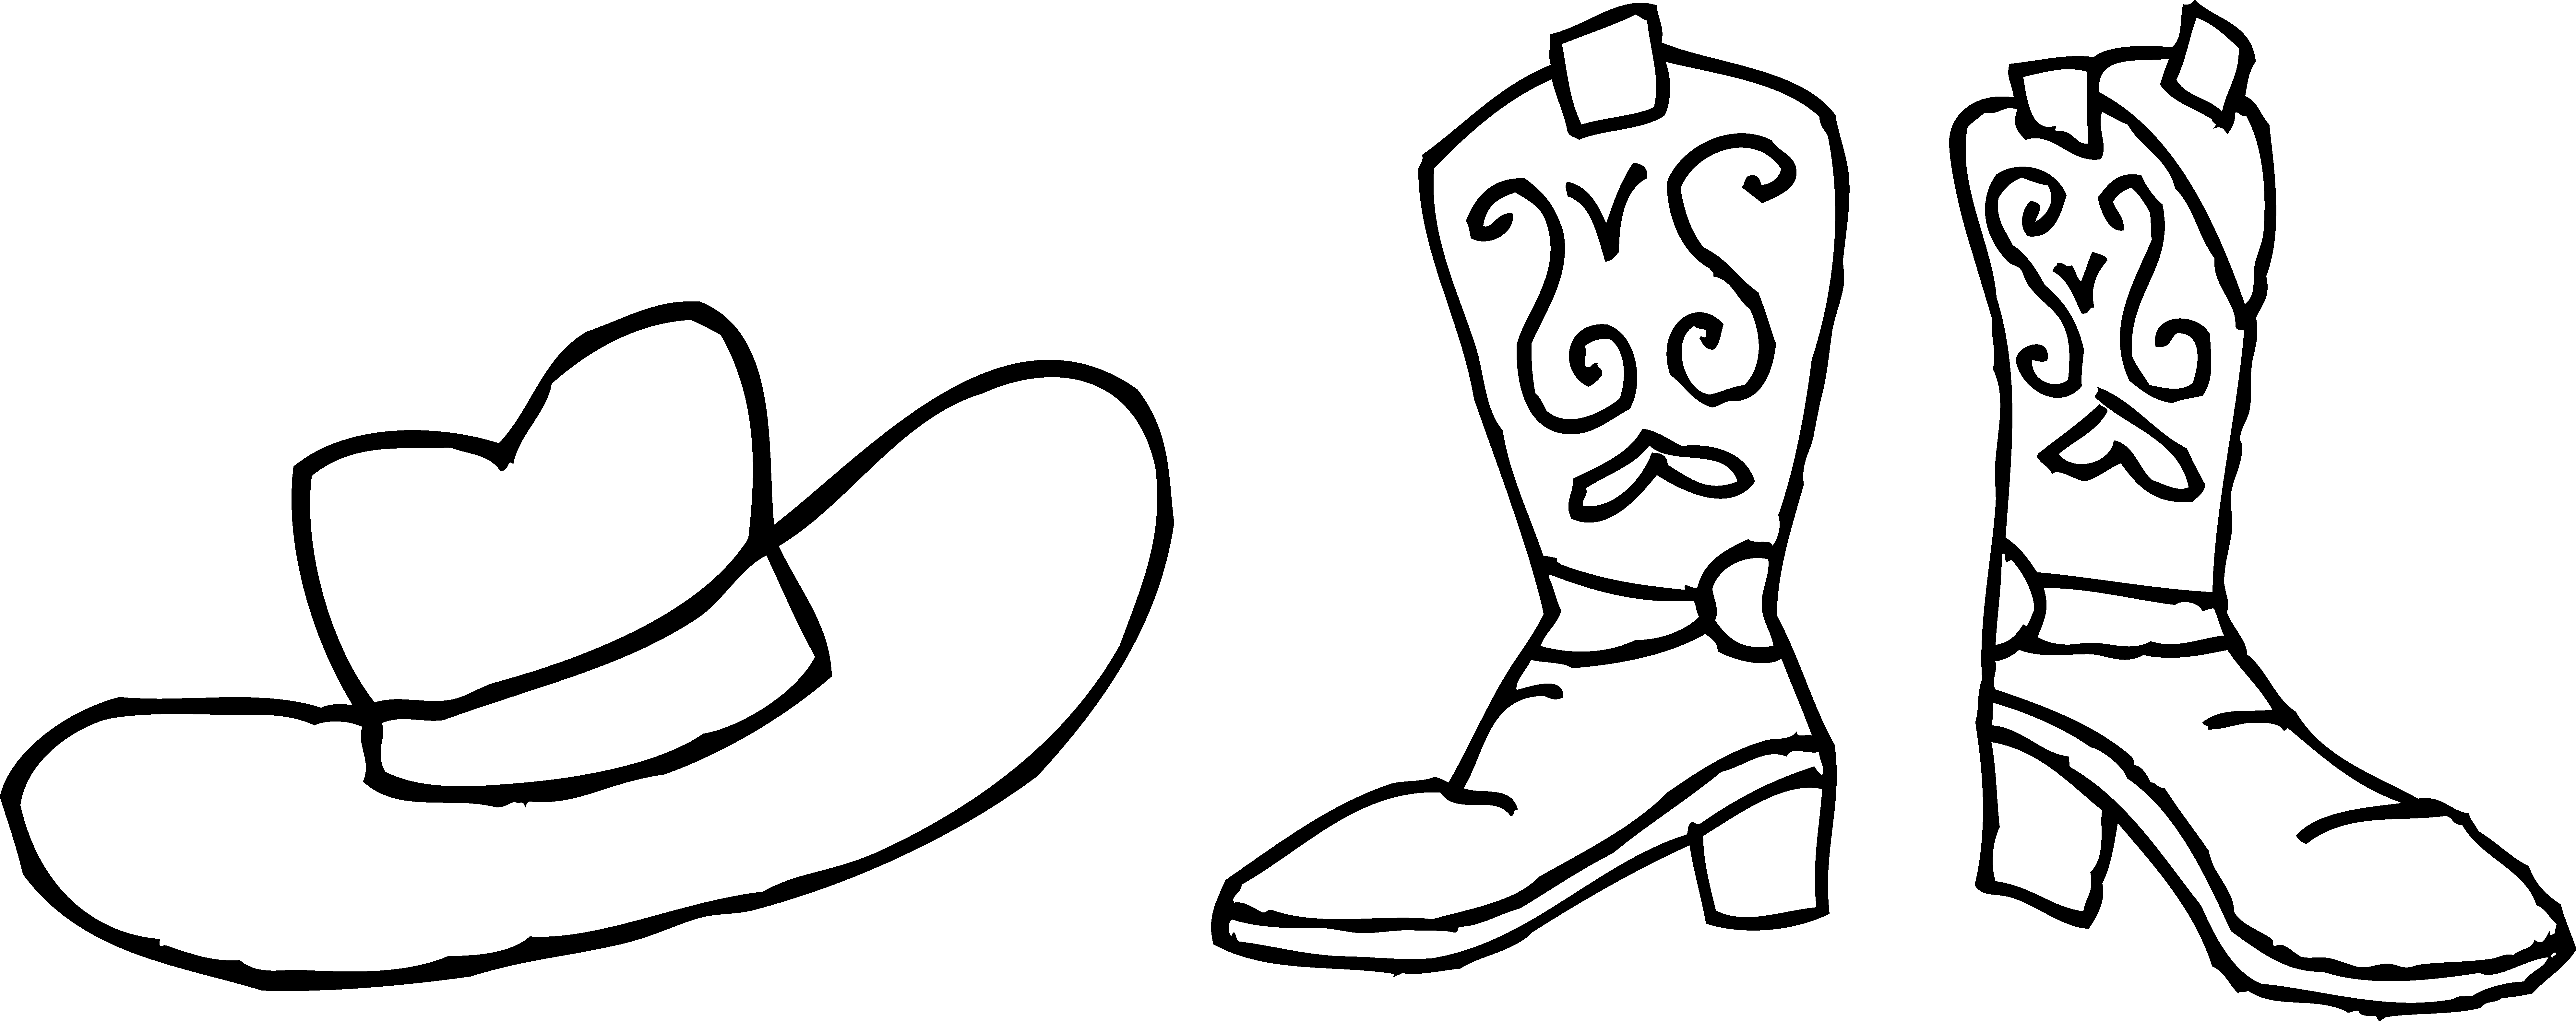 Hats clipart wild west. Cowboy hat and boots